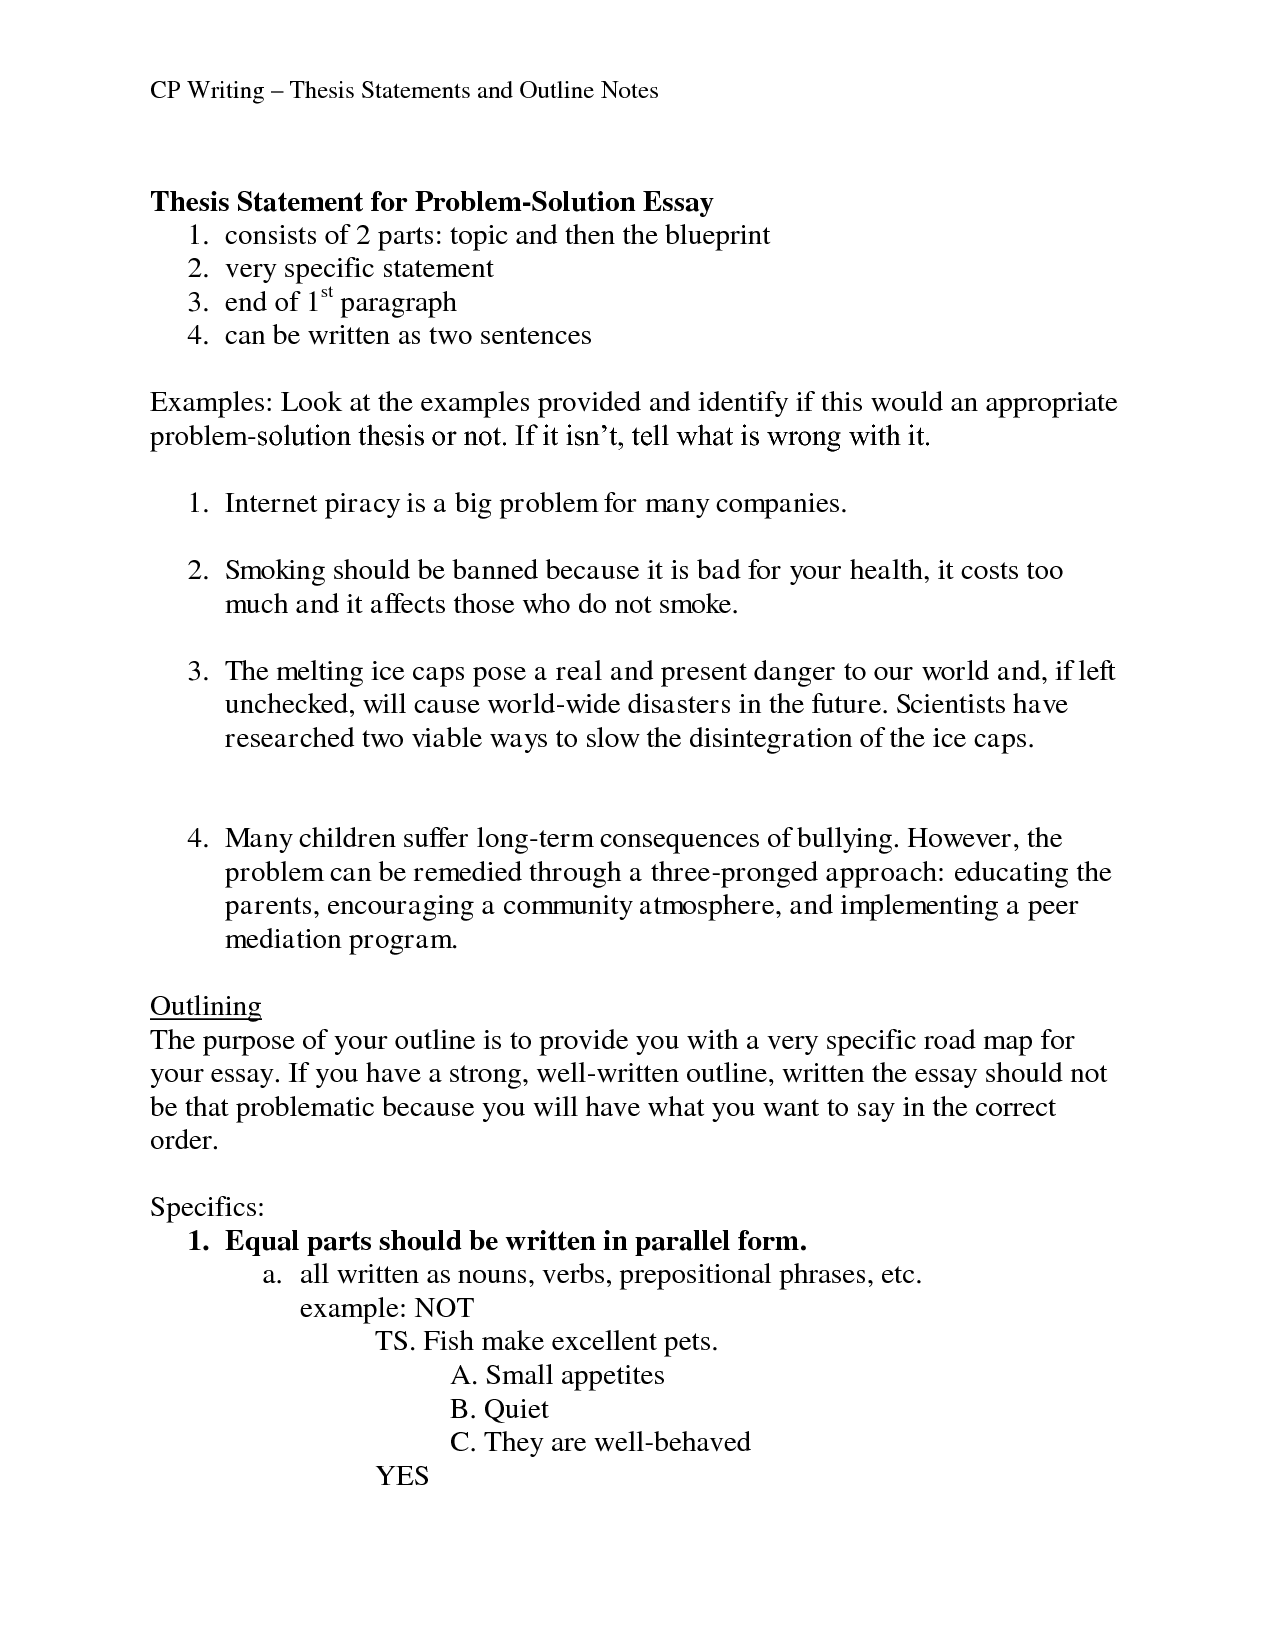 Tips for Writing Great Cancer Thesis Statements